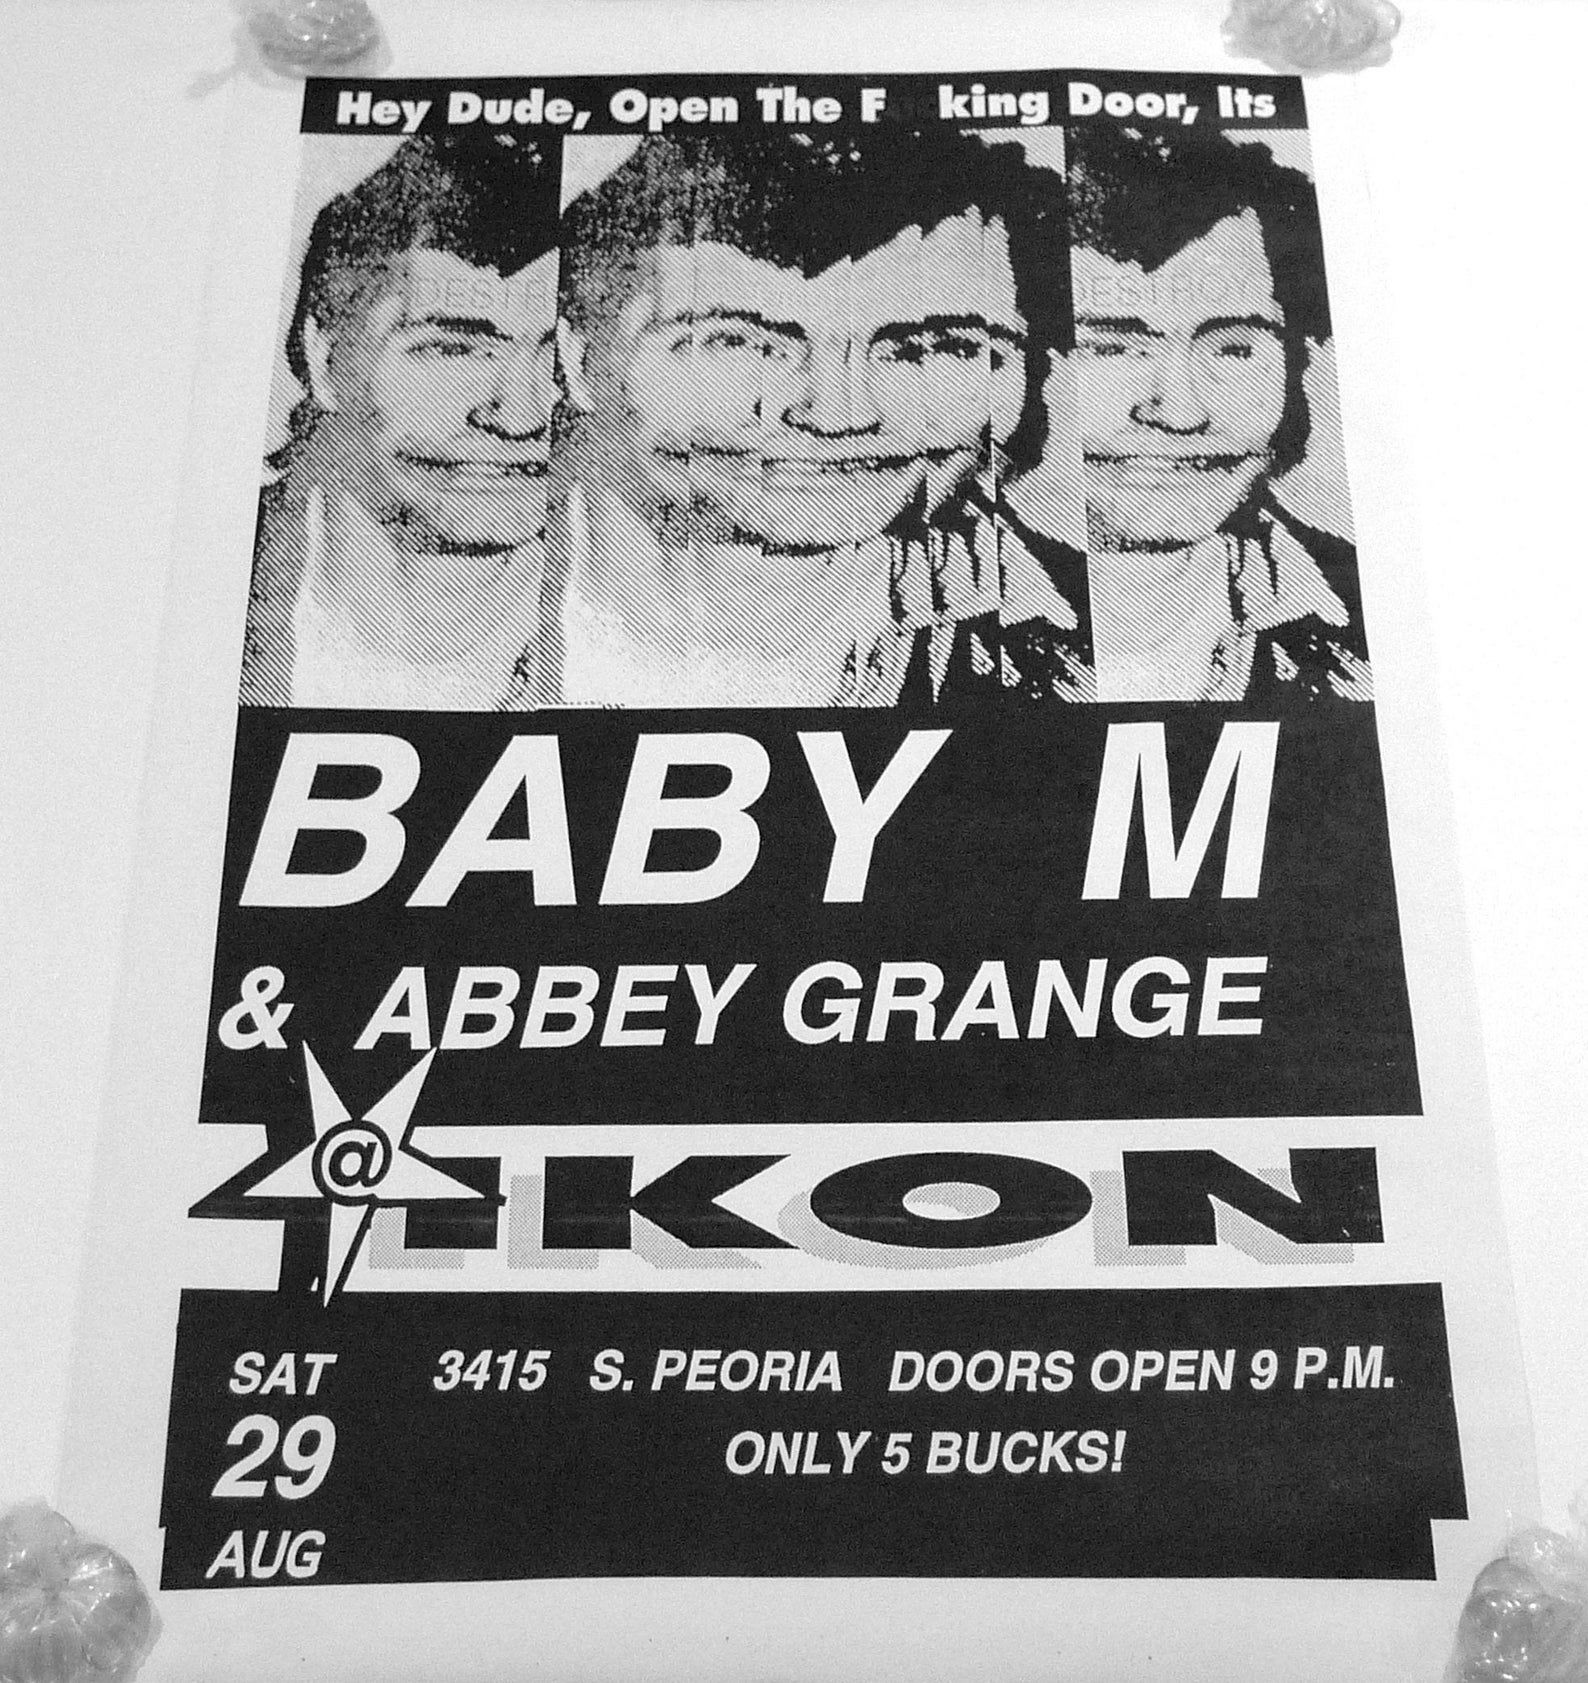 Concert Music 90s Poster